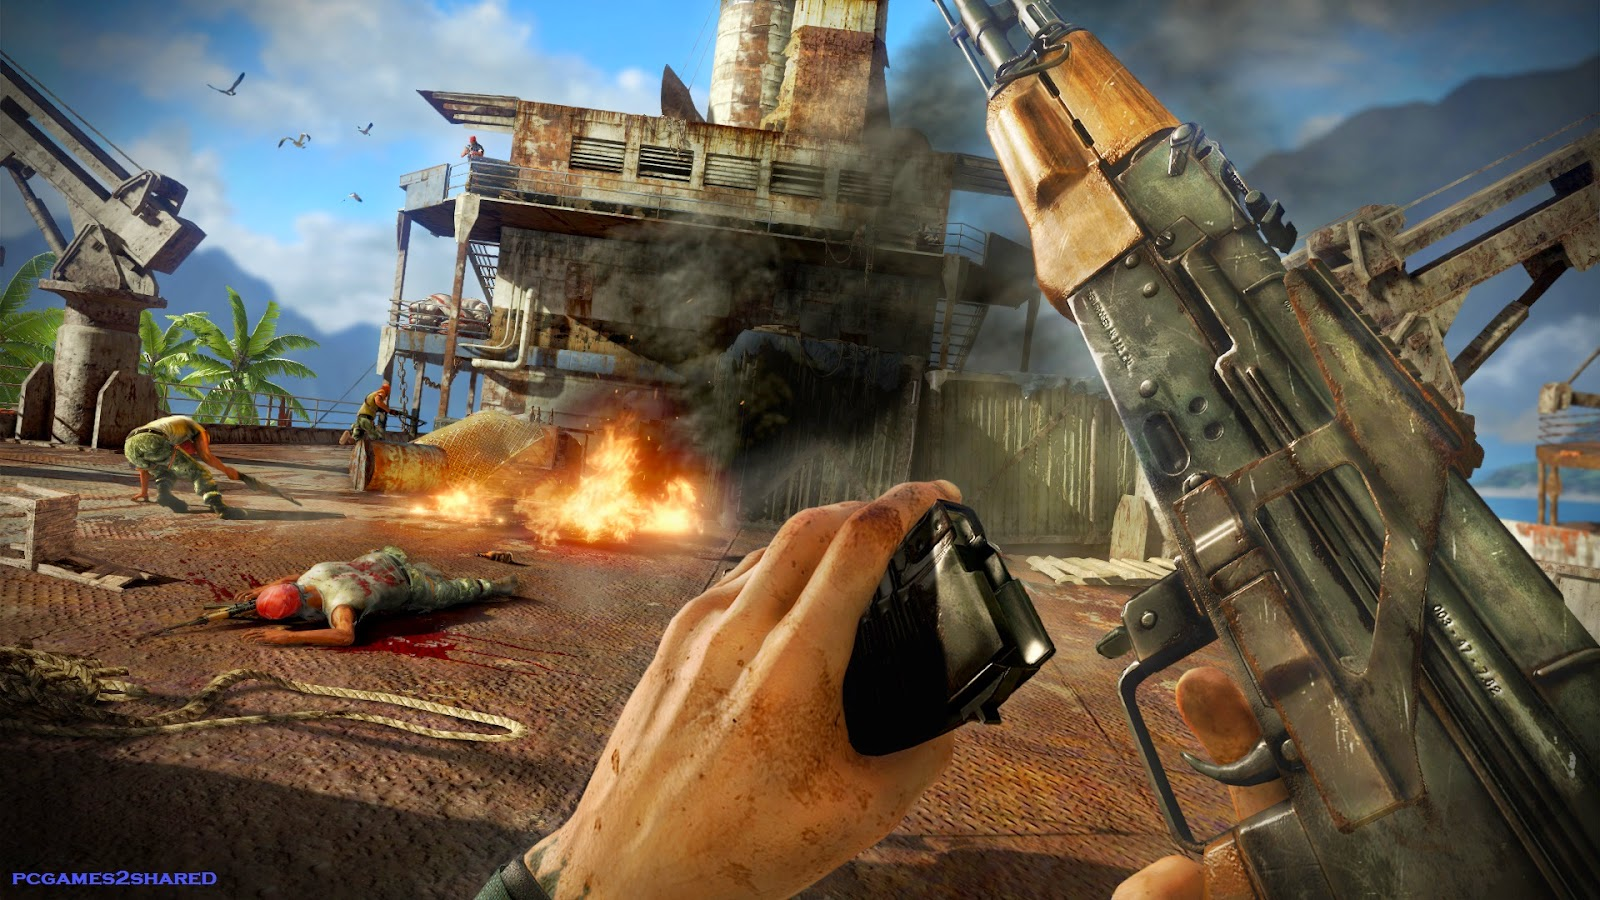 FAR CRY 2 FOR PC | PC Games 2 Shared